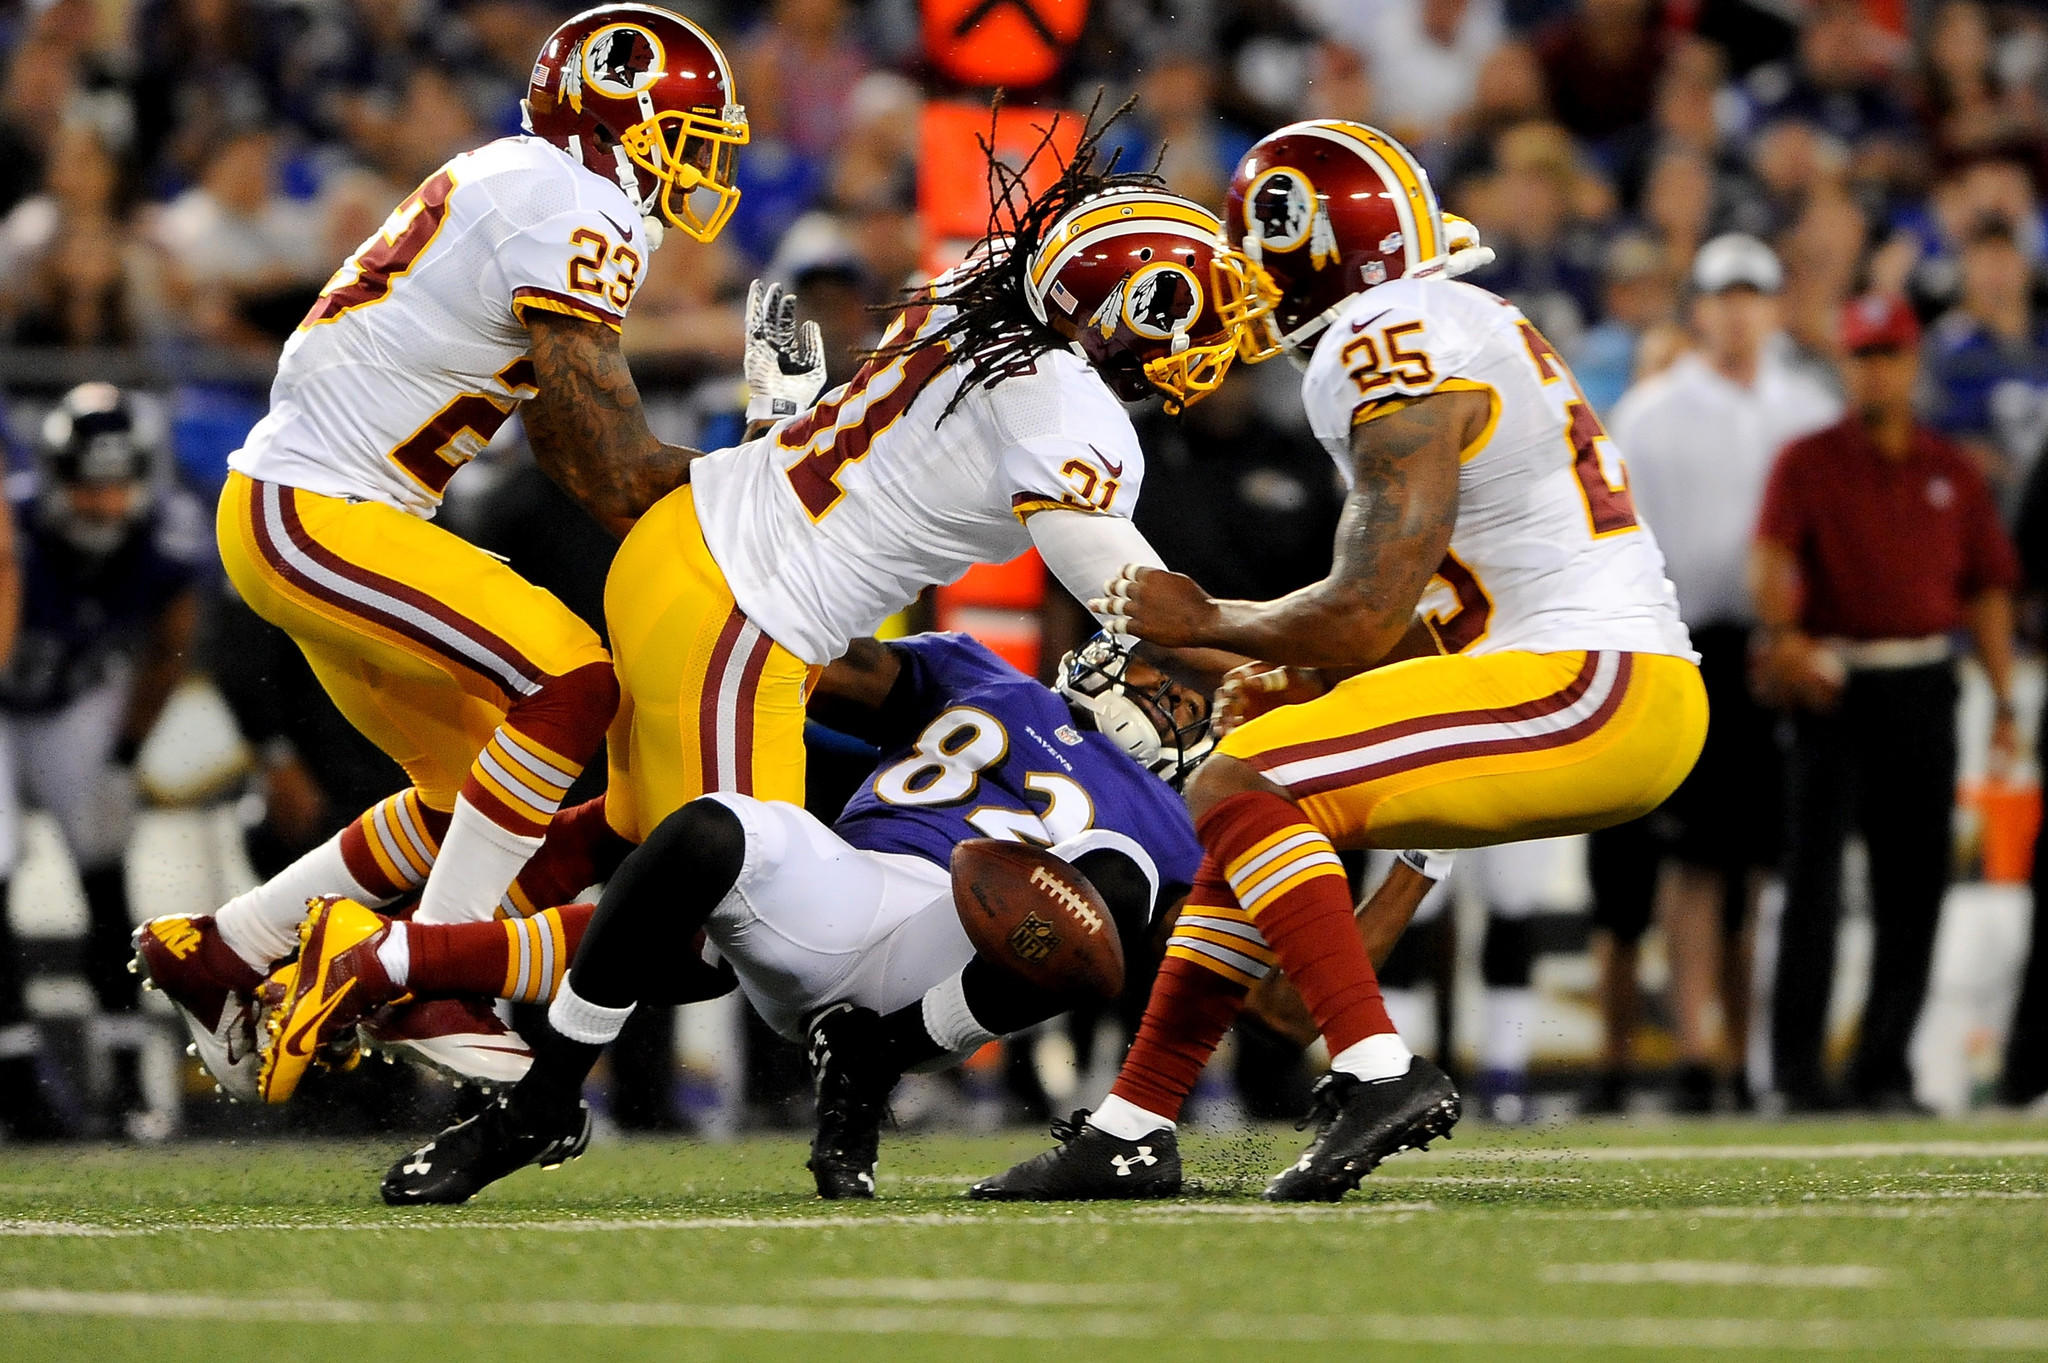 Redskins safety Brandon Meriweather hits Torrey Smith during last Saturday's preseason game.